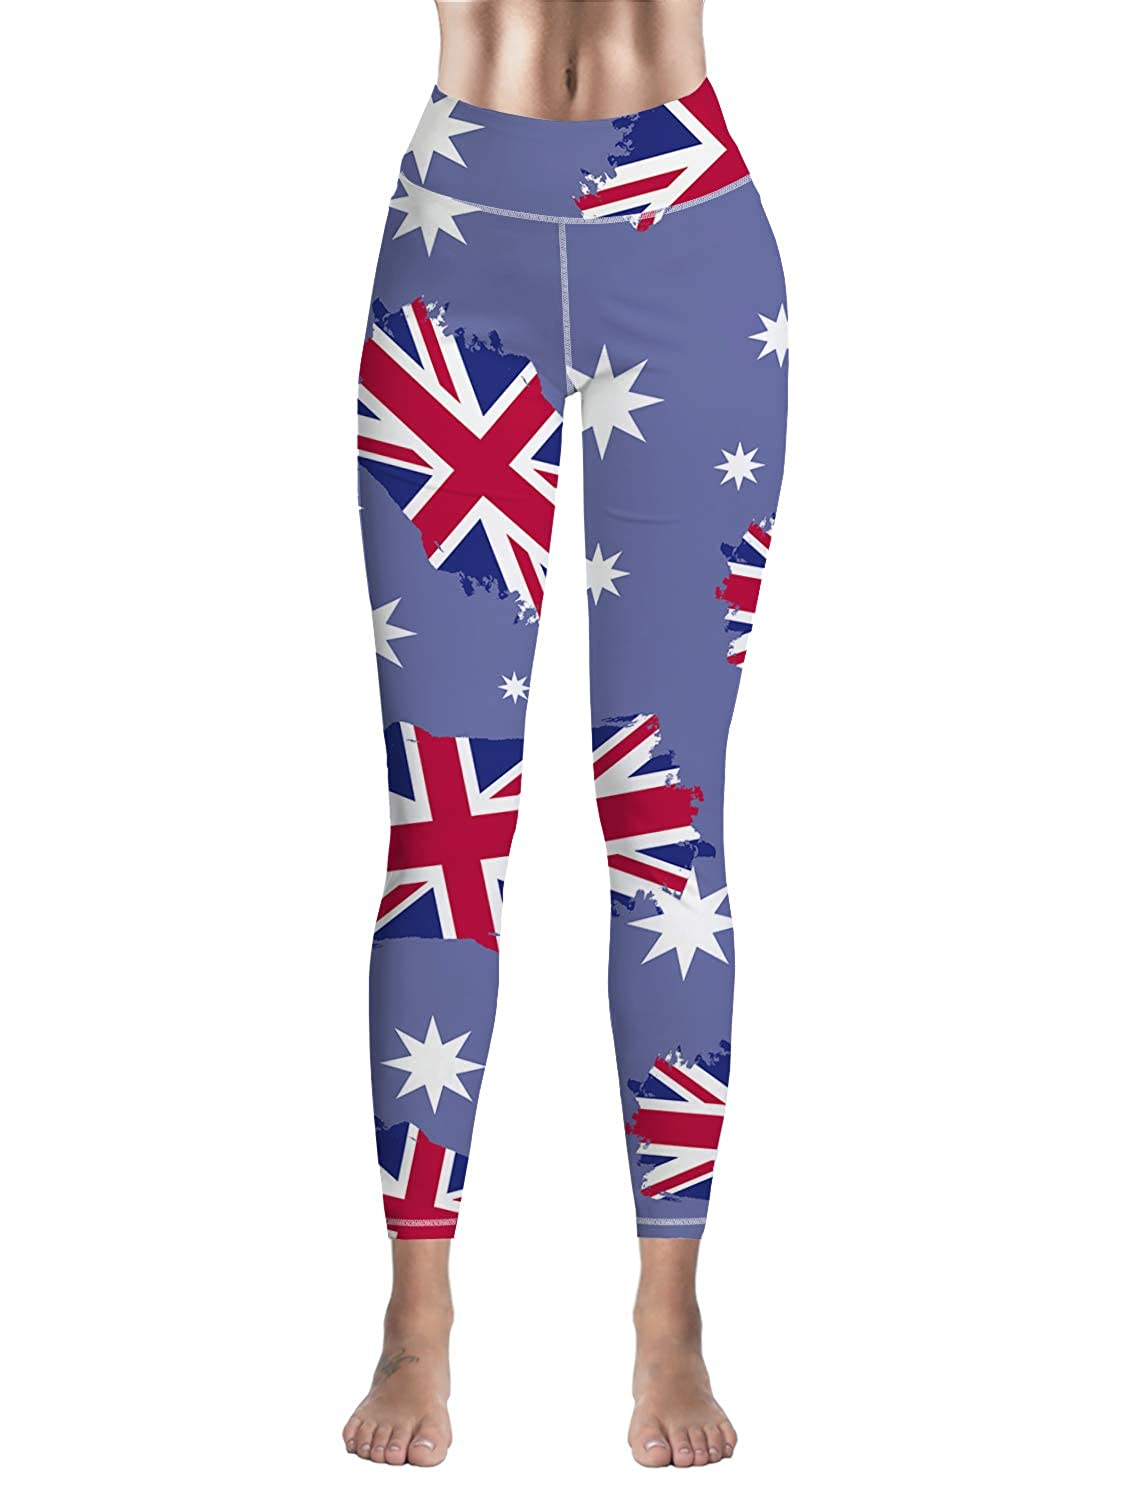 Eelivero Women High Waisted Leggings Independence Day American Flag Black and White